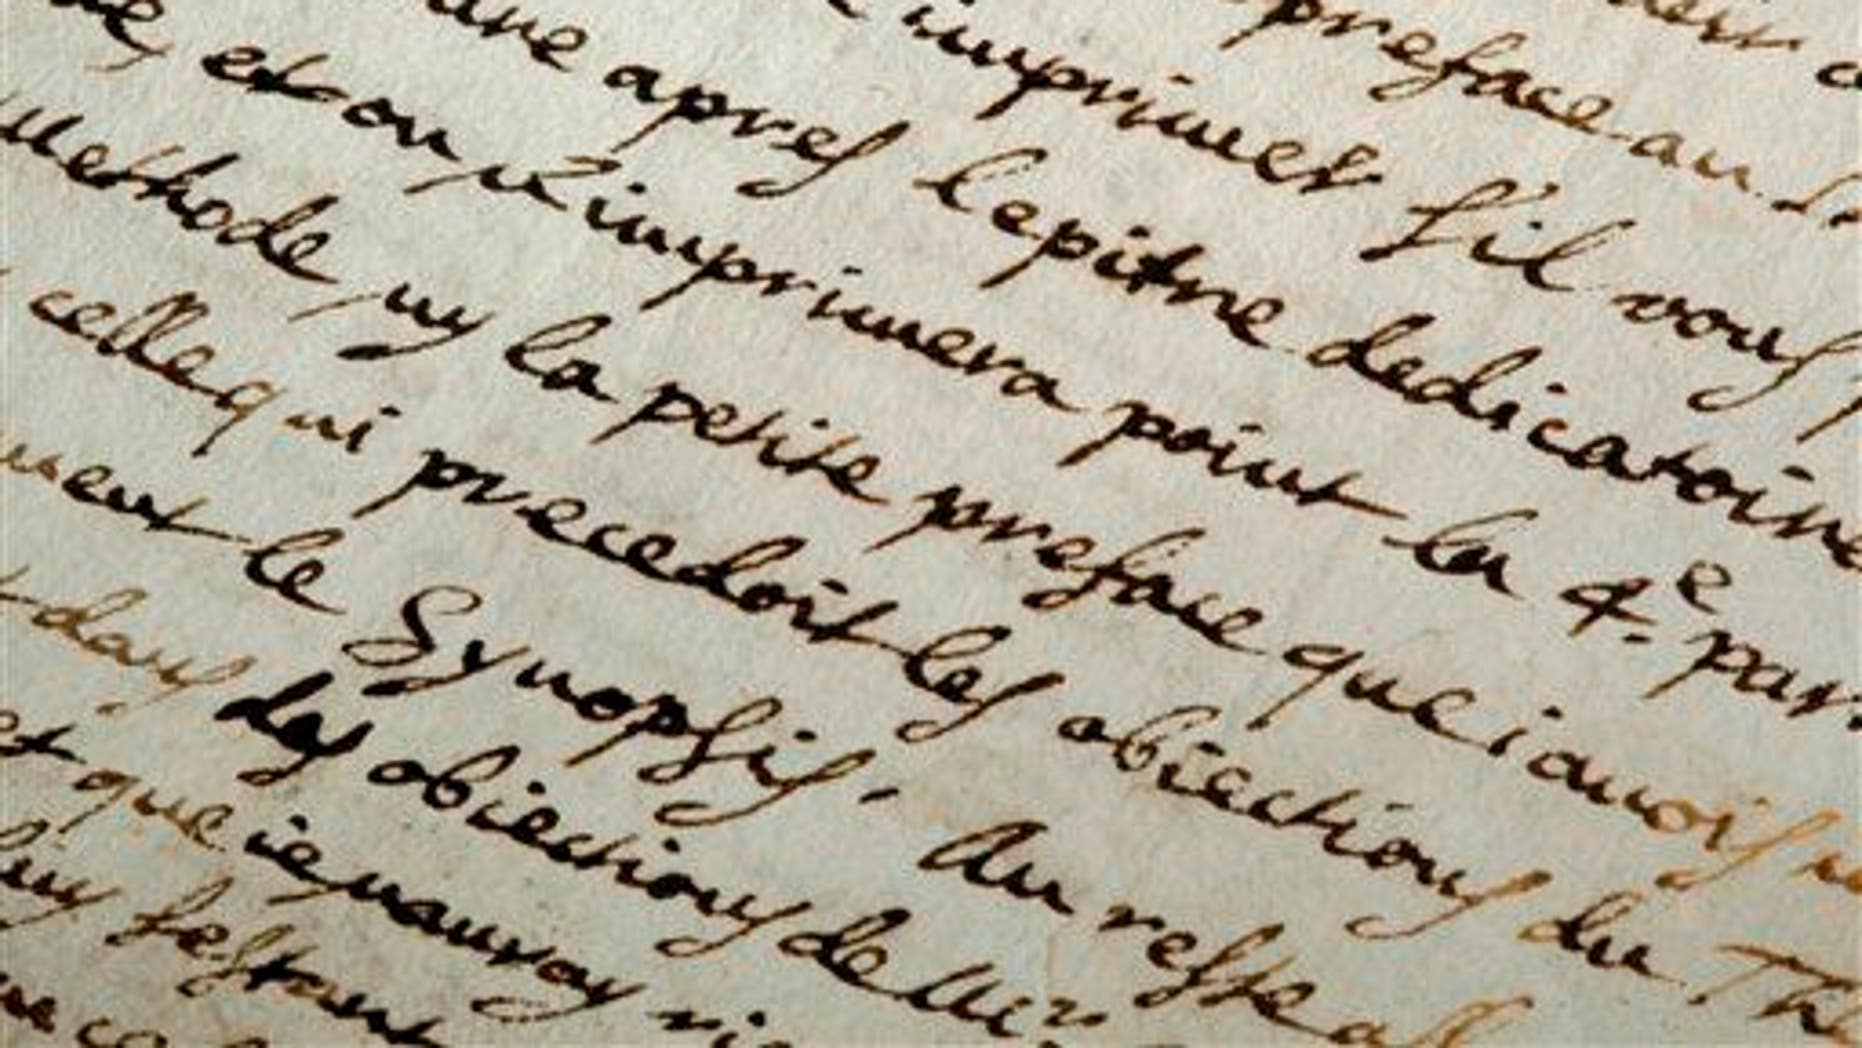 This May 6, 2010, photo shows a letter signed by French philosopher Rene Descartes in Haverford, Pa.